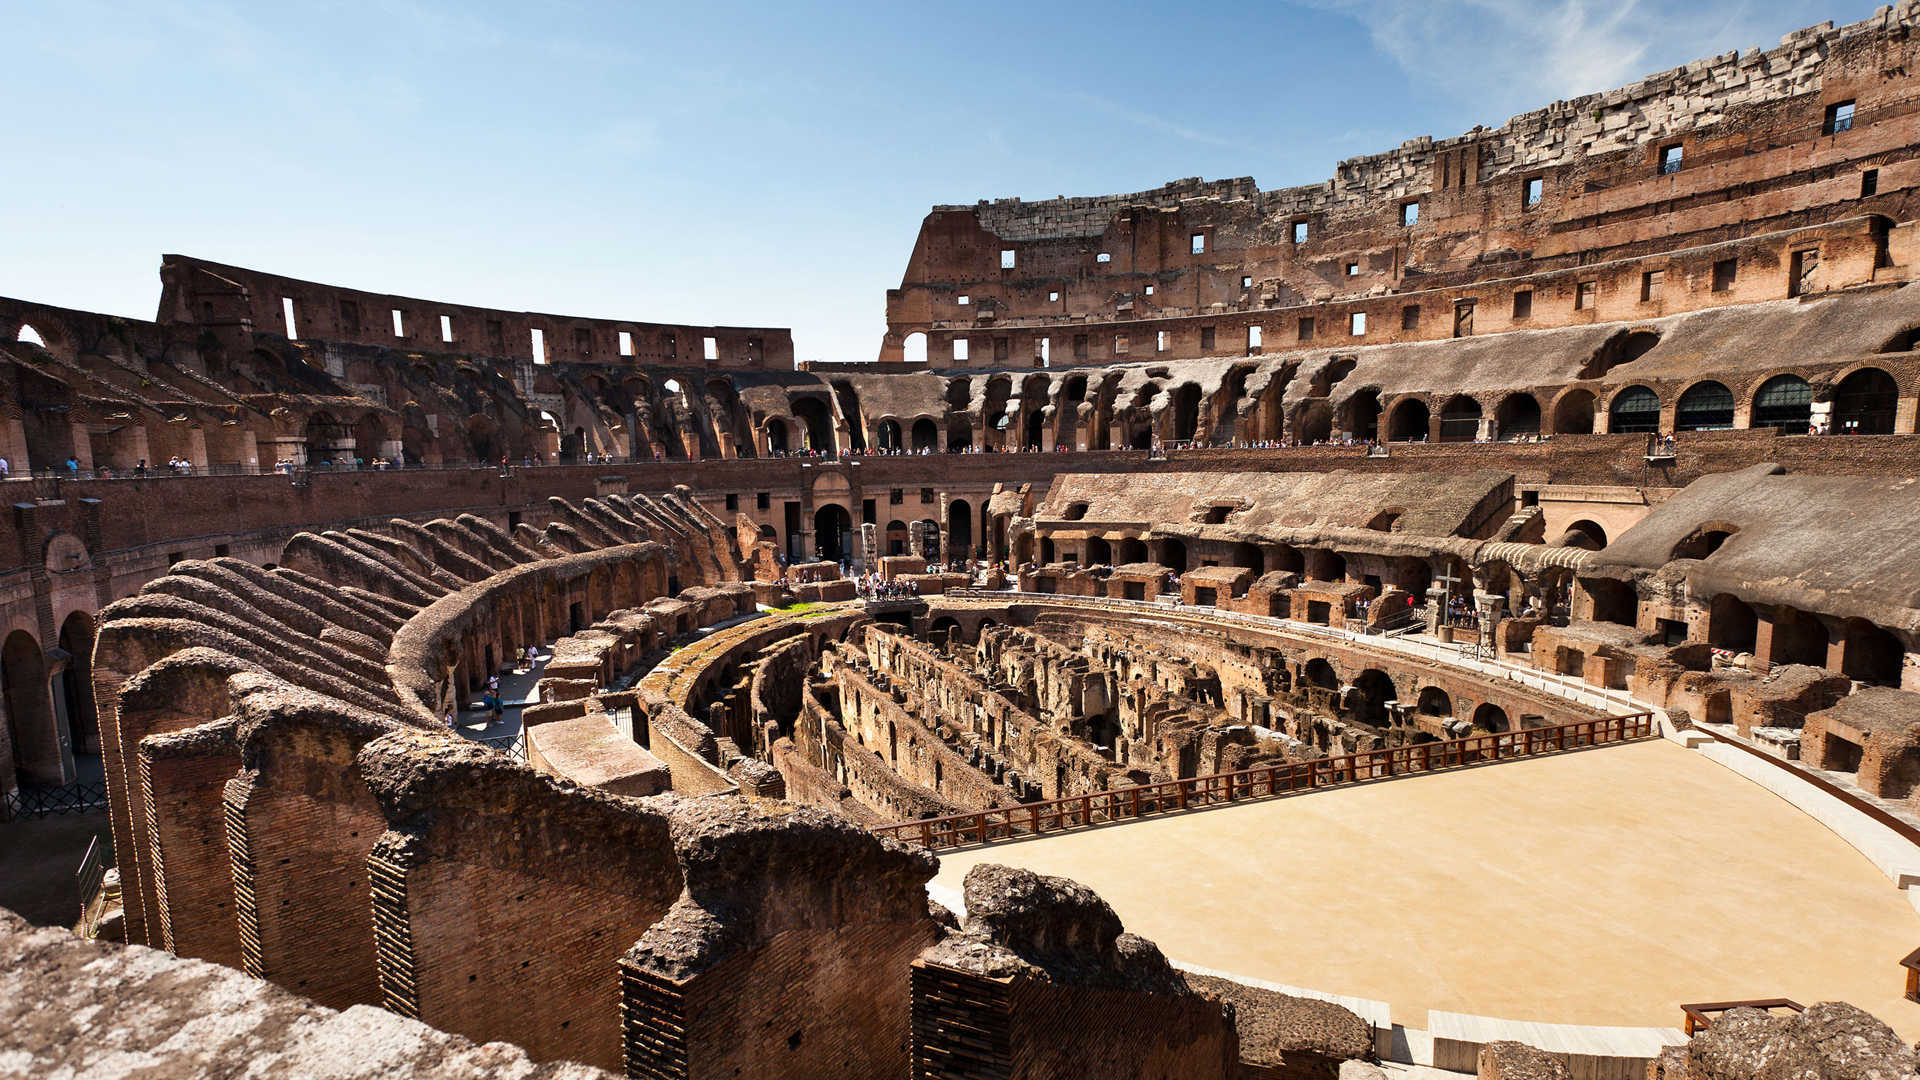 Rome: the interior of the Colosseum